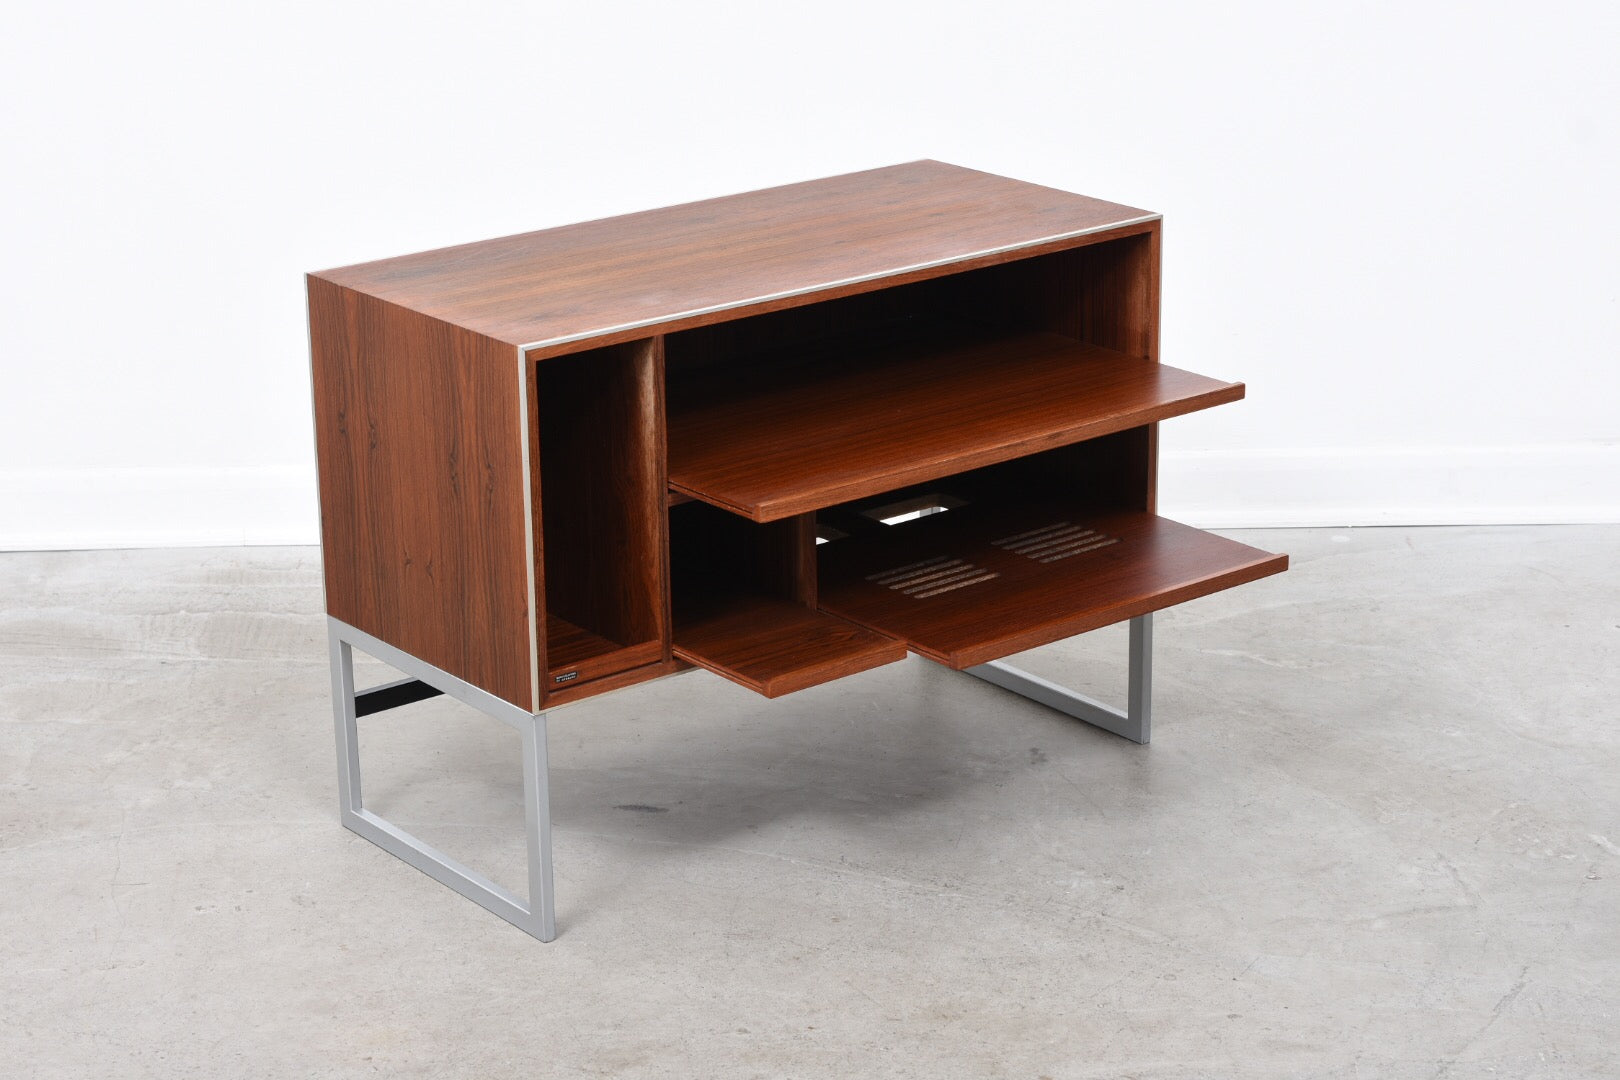 Rosewood hi-fi stand by Bang & Olufsen